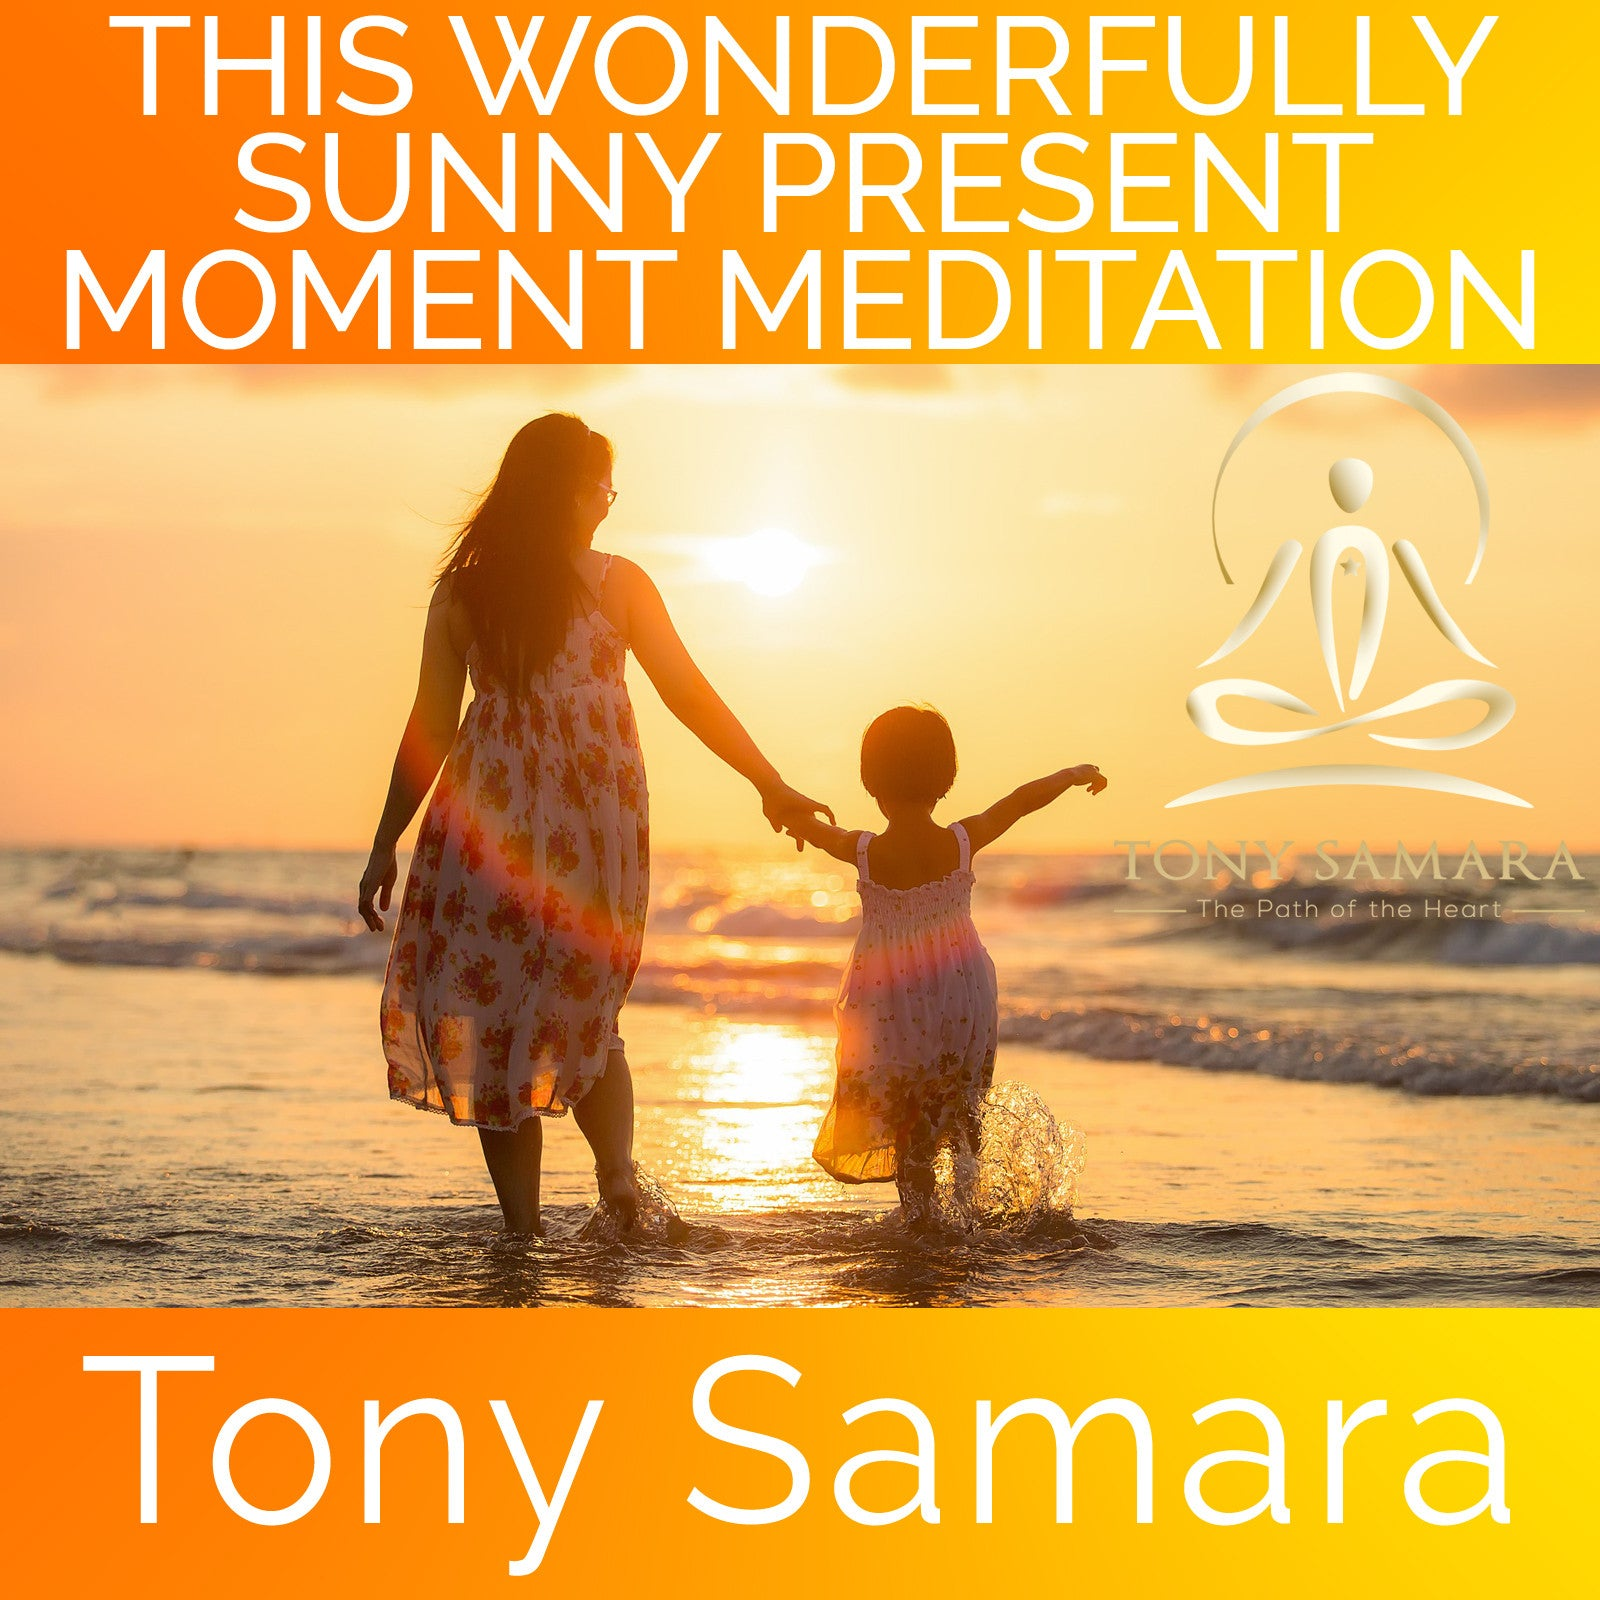 This Wonderfully Sunny Present Moment Meditation (MP3 Audio Download) - Tony Samara Meditation